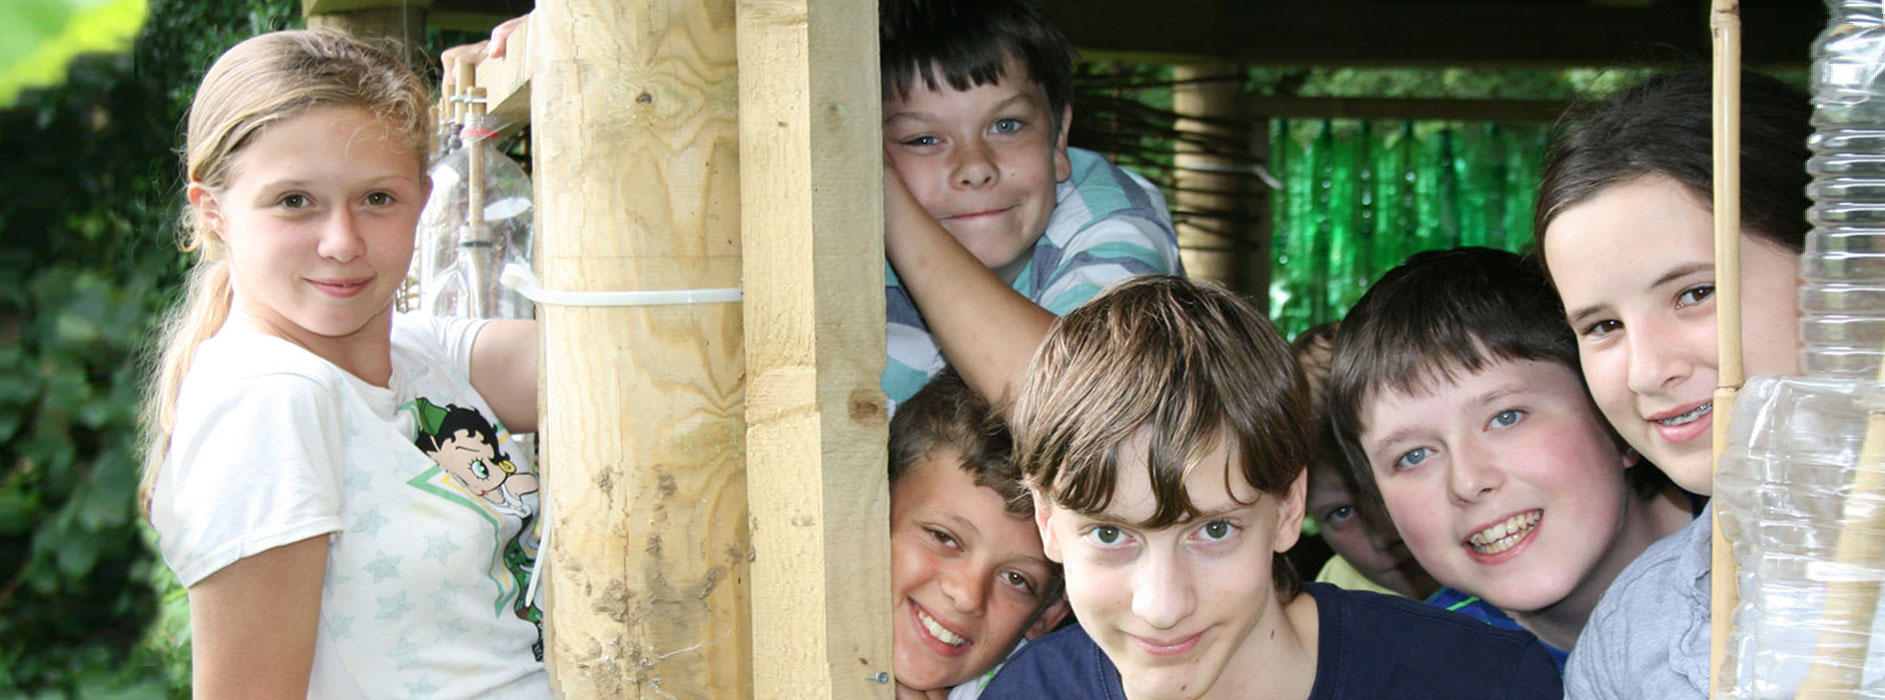 Rowdeford students outdoors